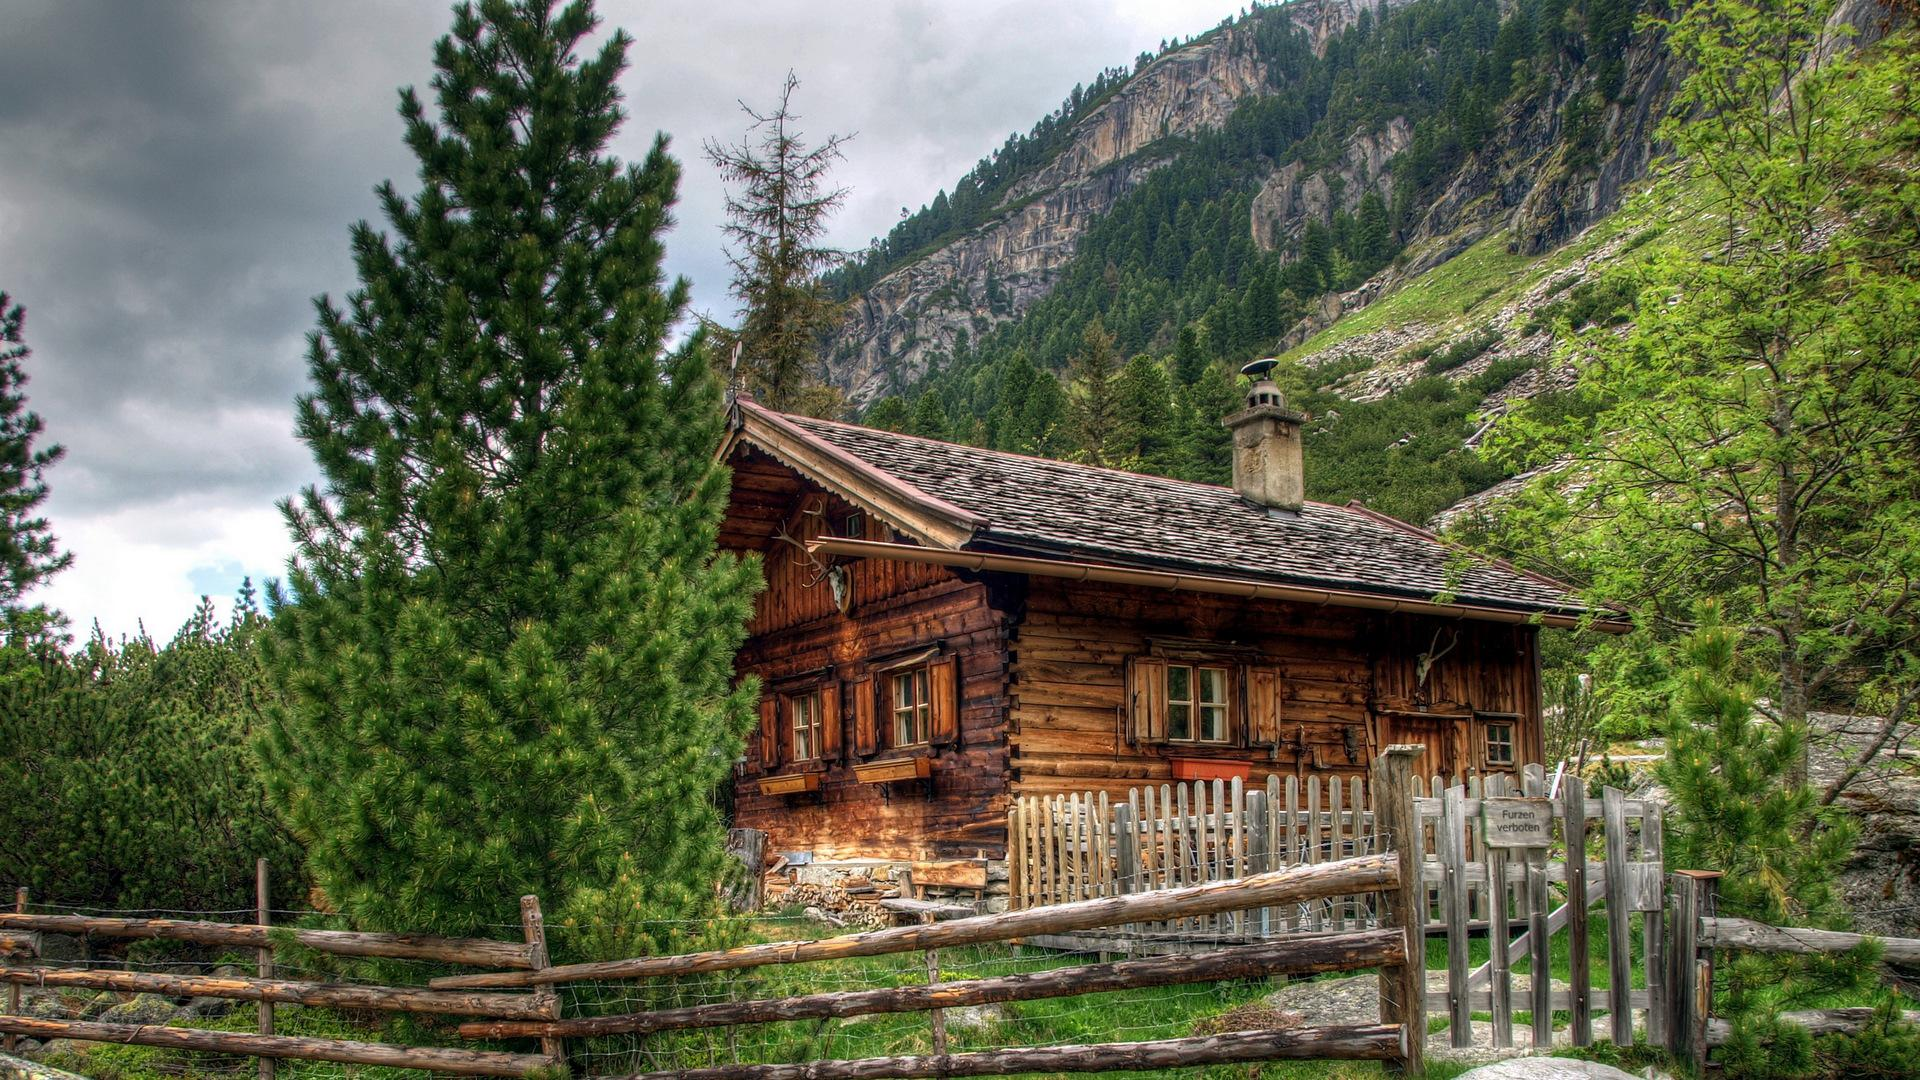 HDR Log Cabin Wallpaper 18777